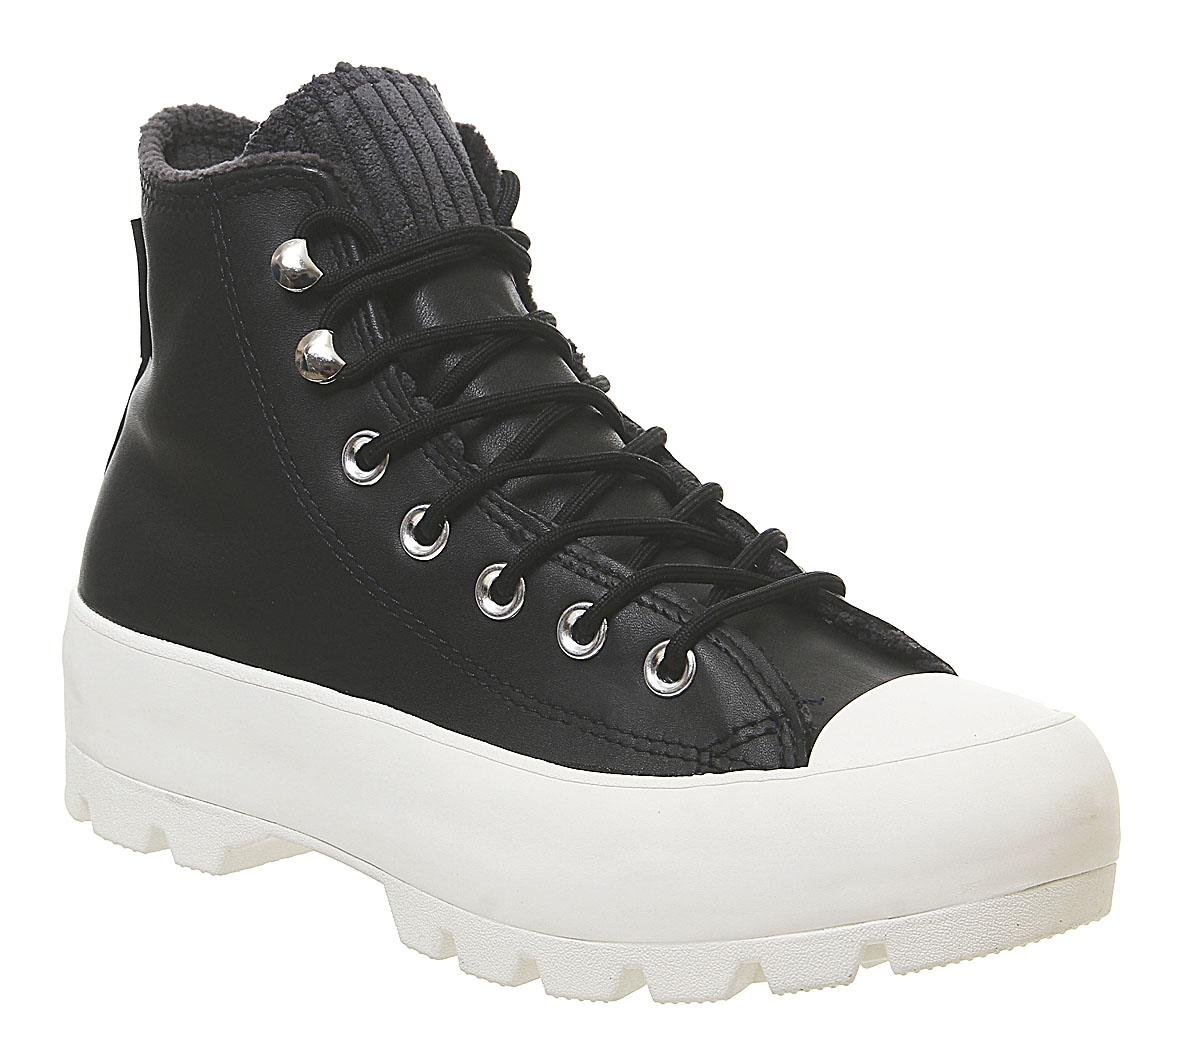 Chuck Taylor All Star Lugged Hi Trainers